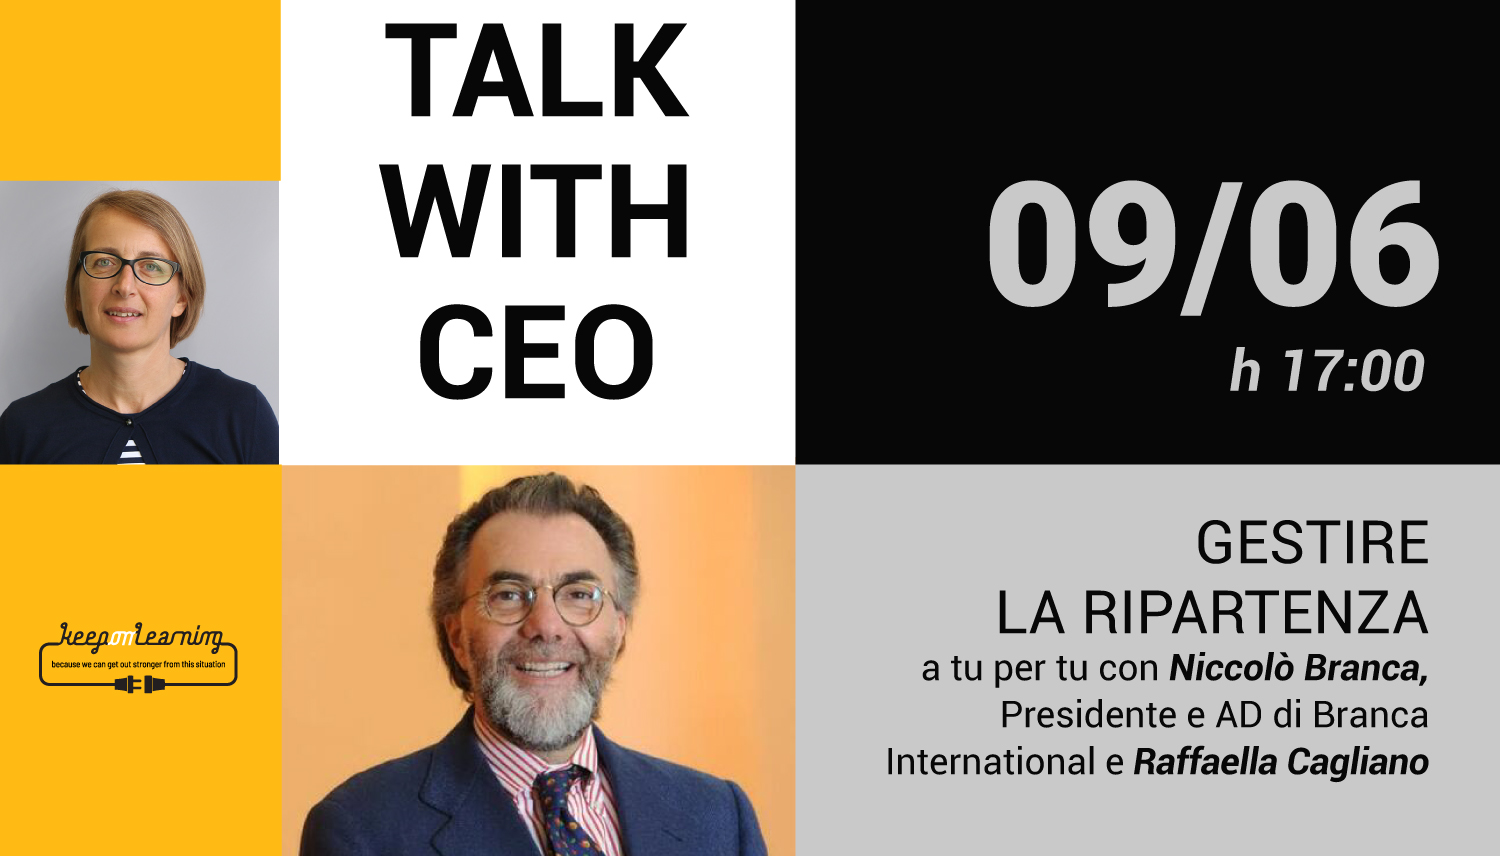 Talk with CEO